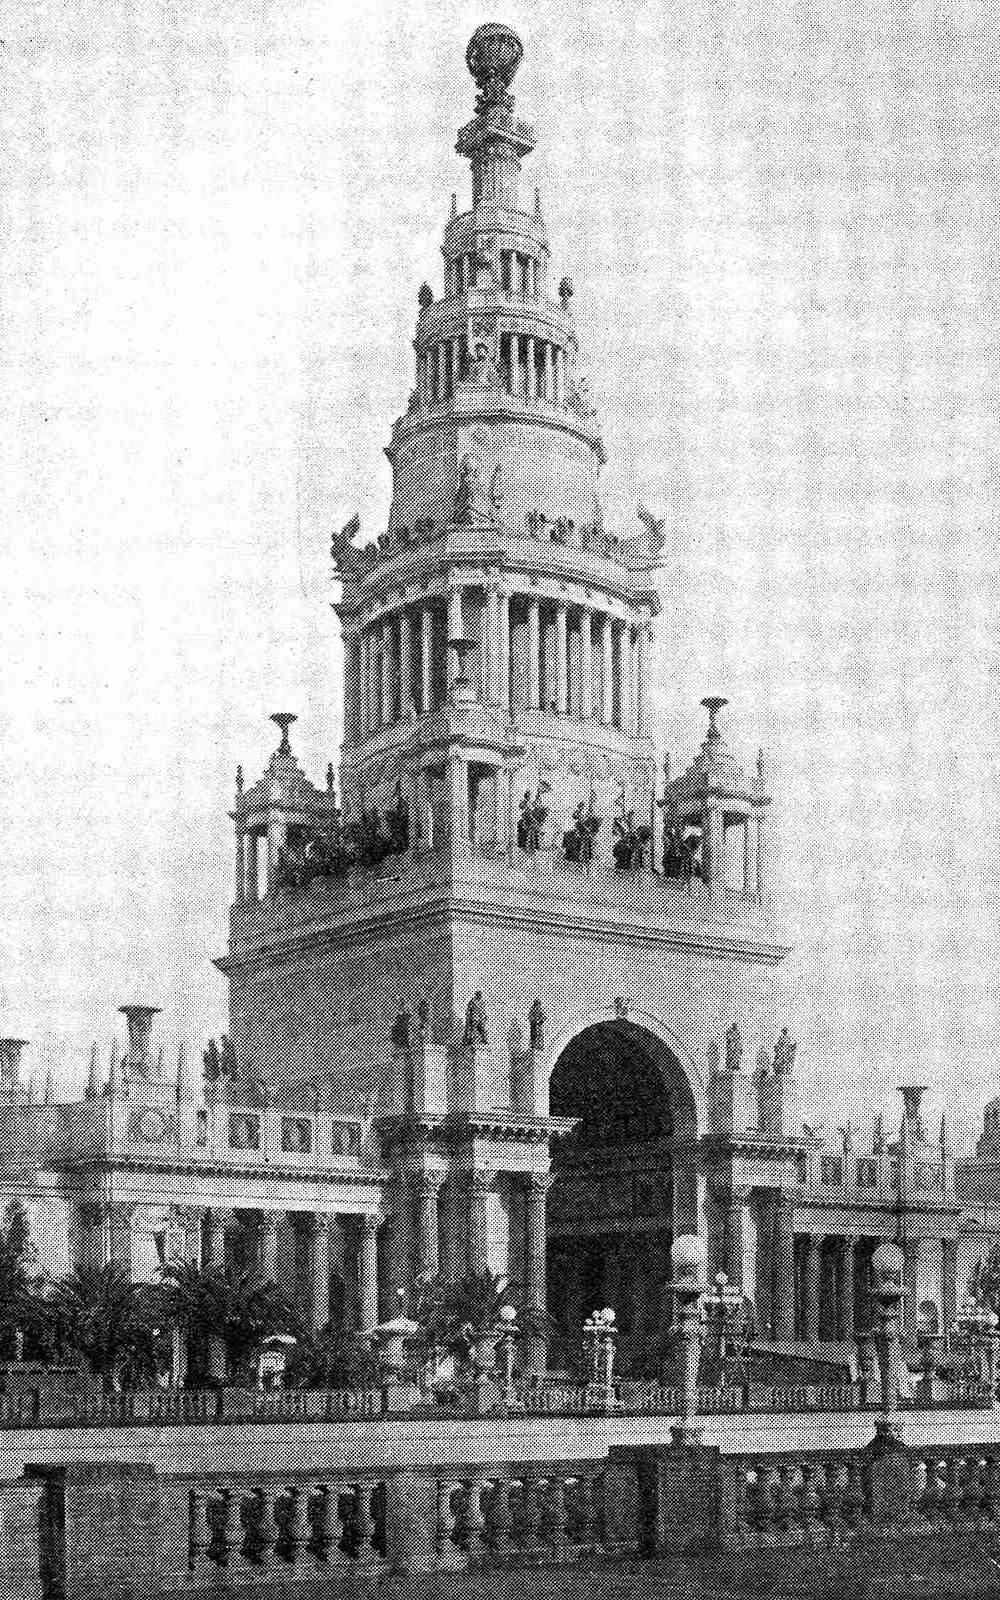 1915 pan pacific expo photo of the Tower of Jewels